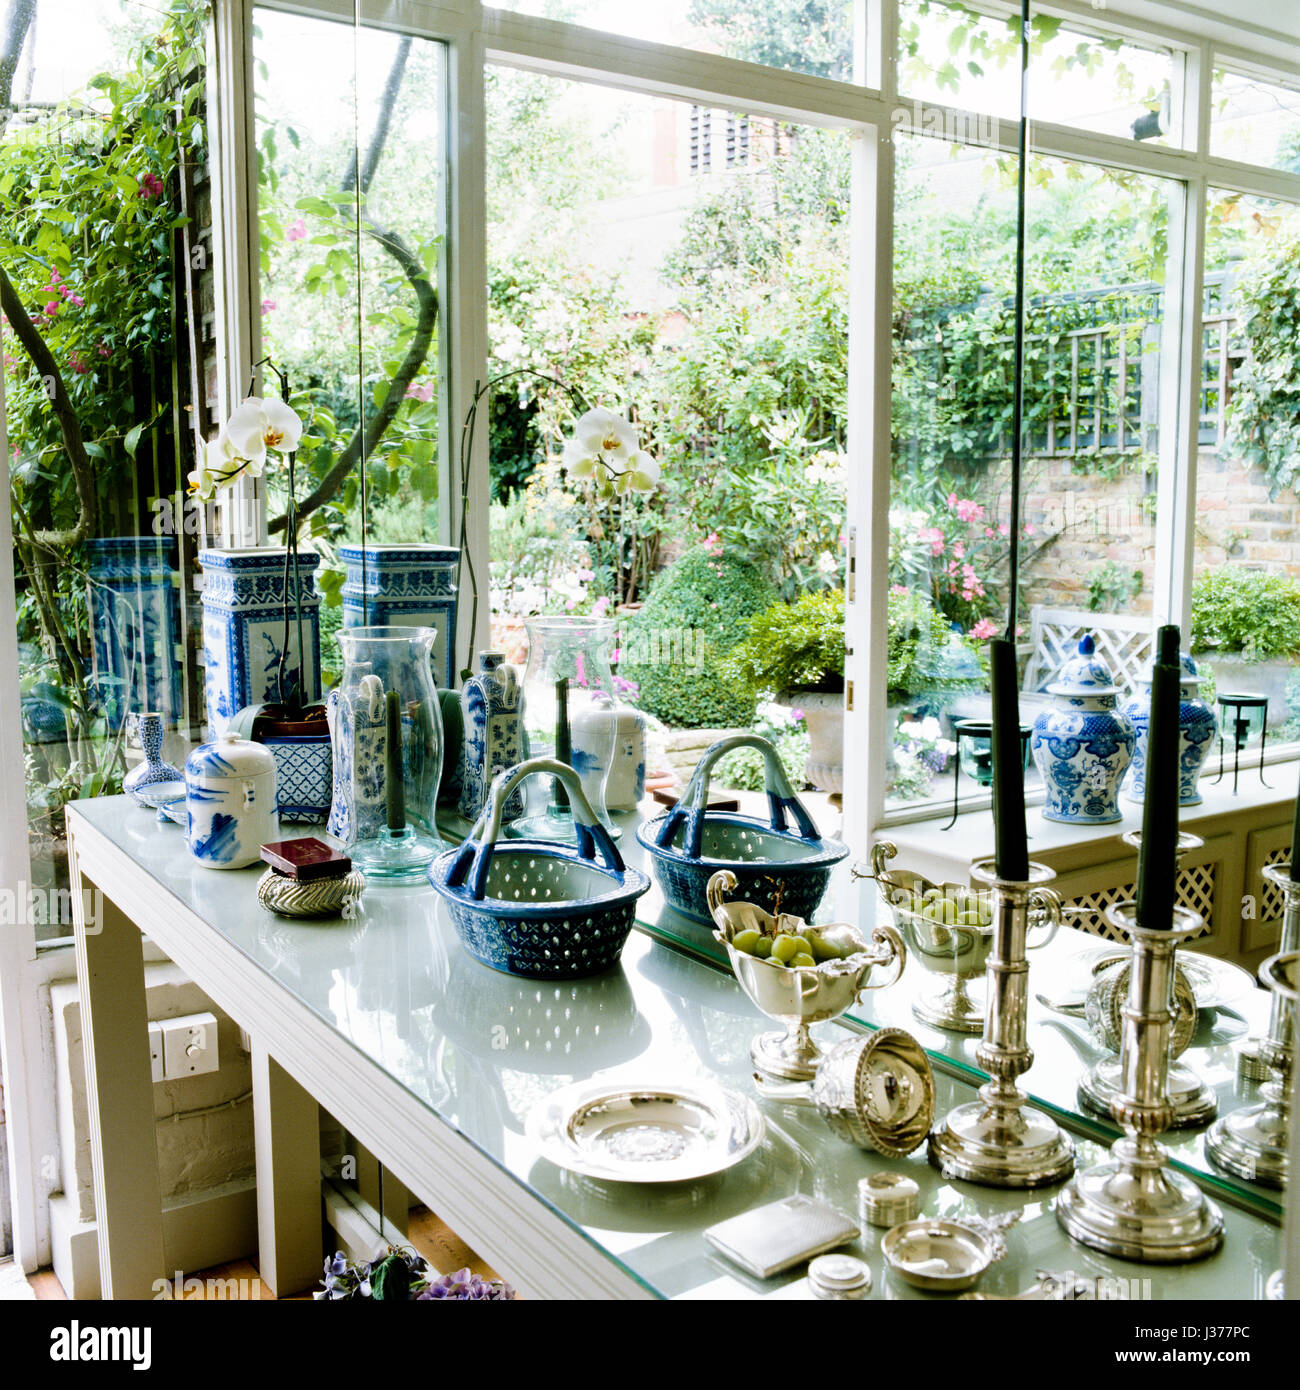 Assorted antiques on table inside conservatory. - Stock Image